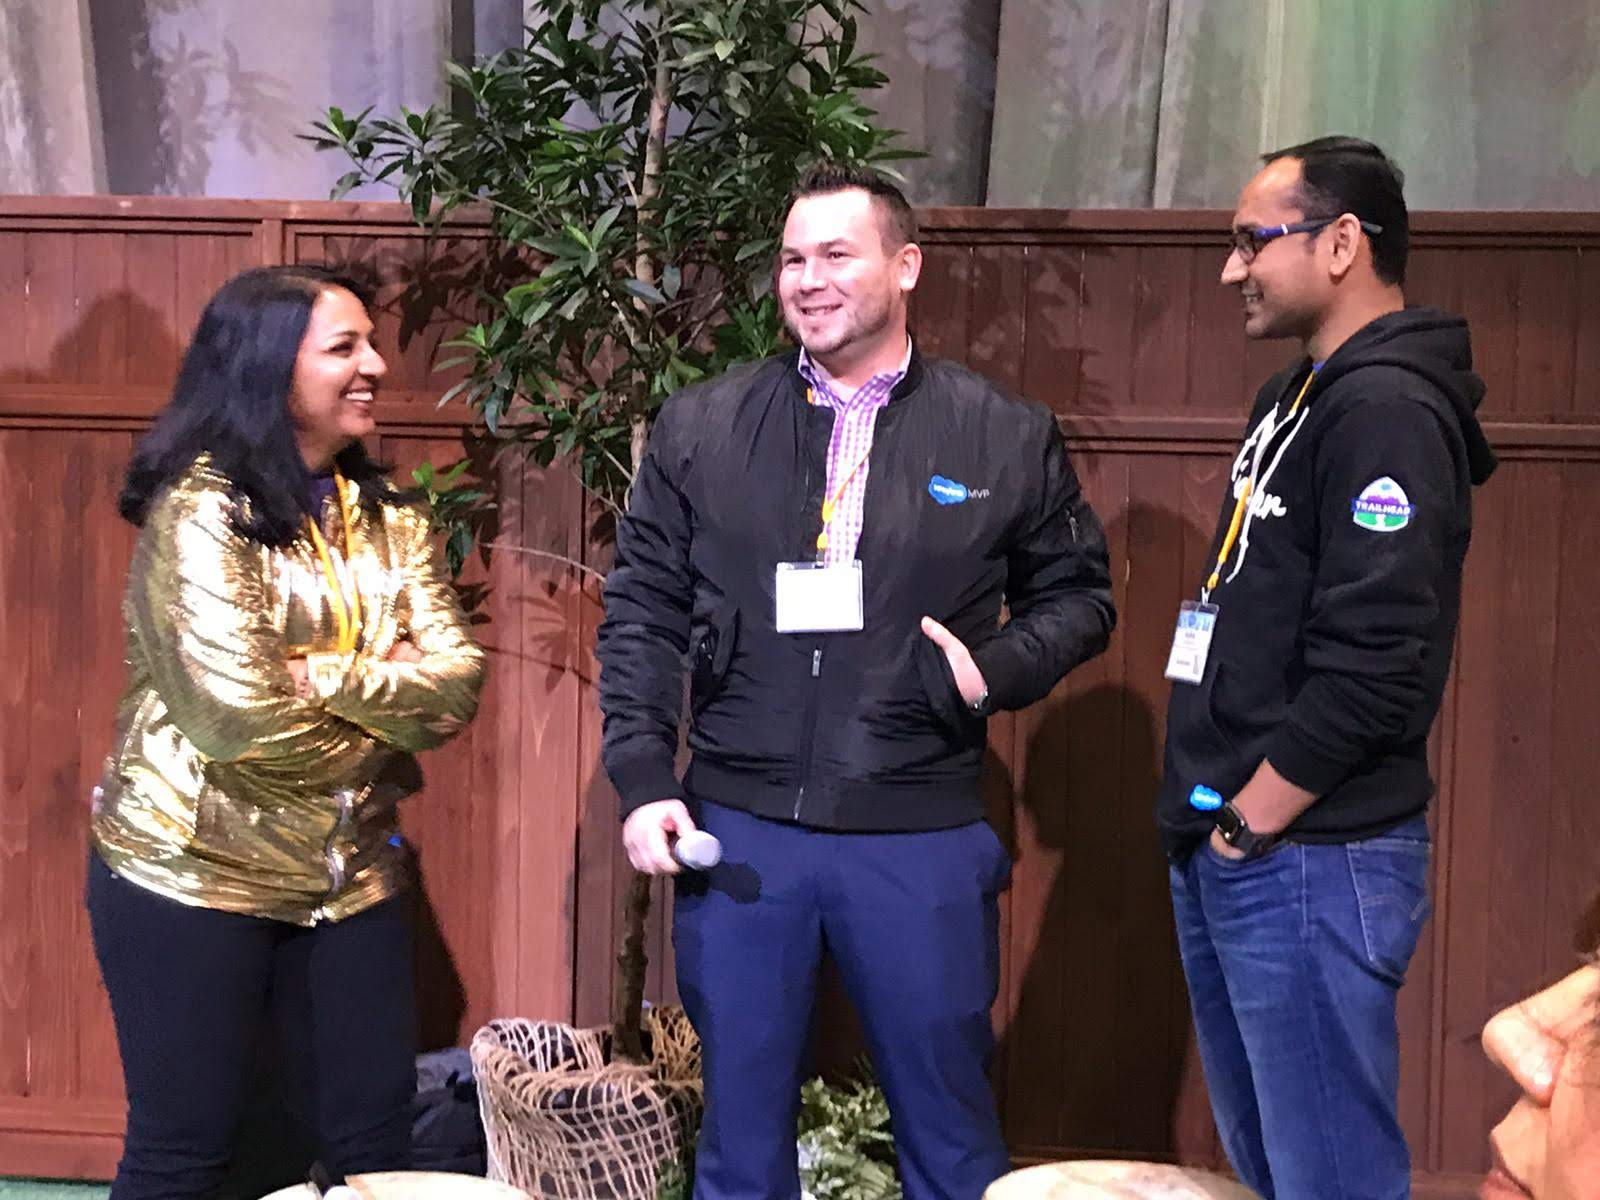 Salesforce MVP Tigh Loughhead, Bhavana Singh and Guha Arumugam at the NYC Salesforce World Tour Ohana